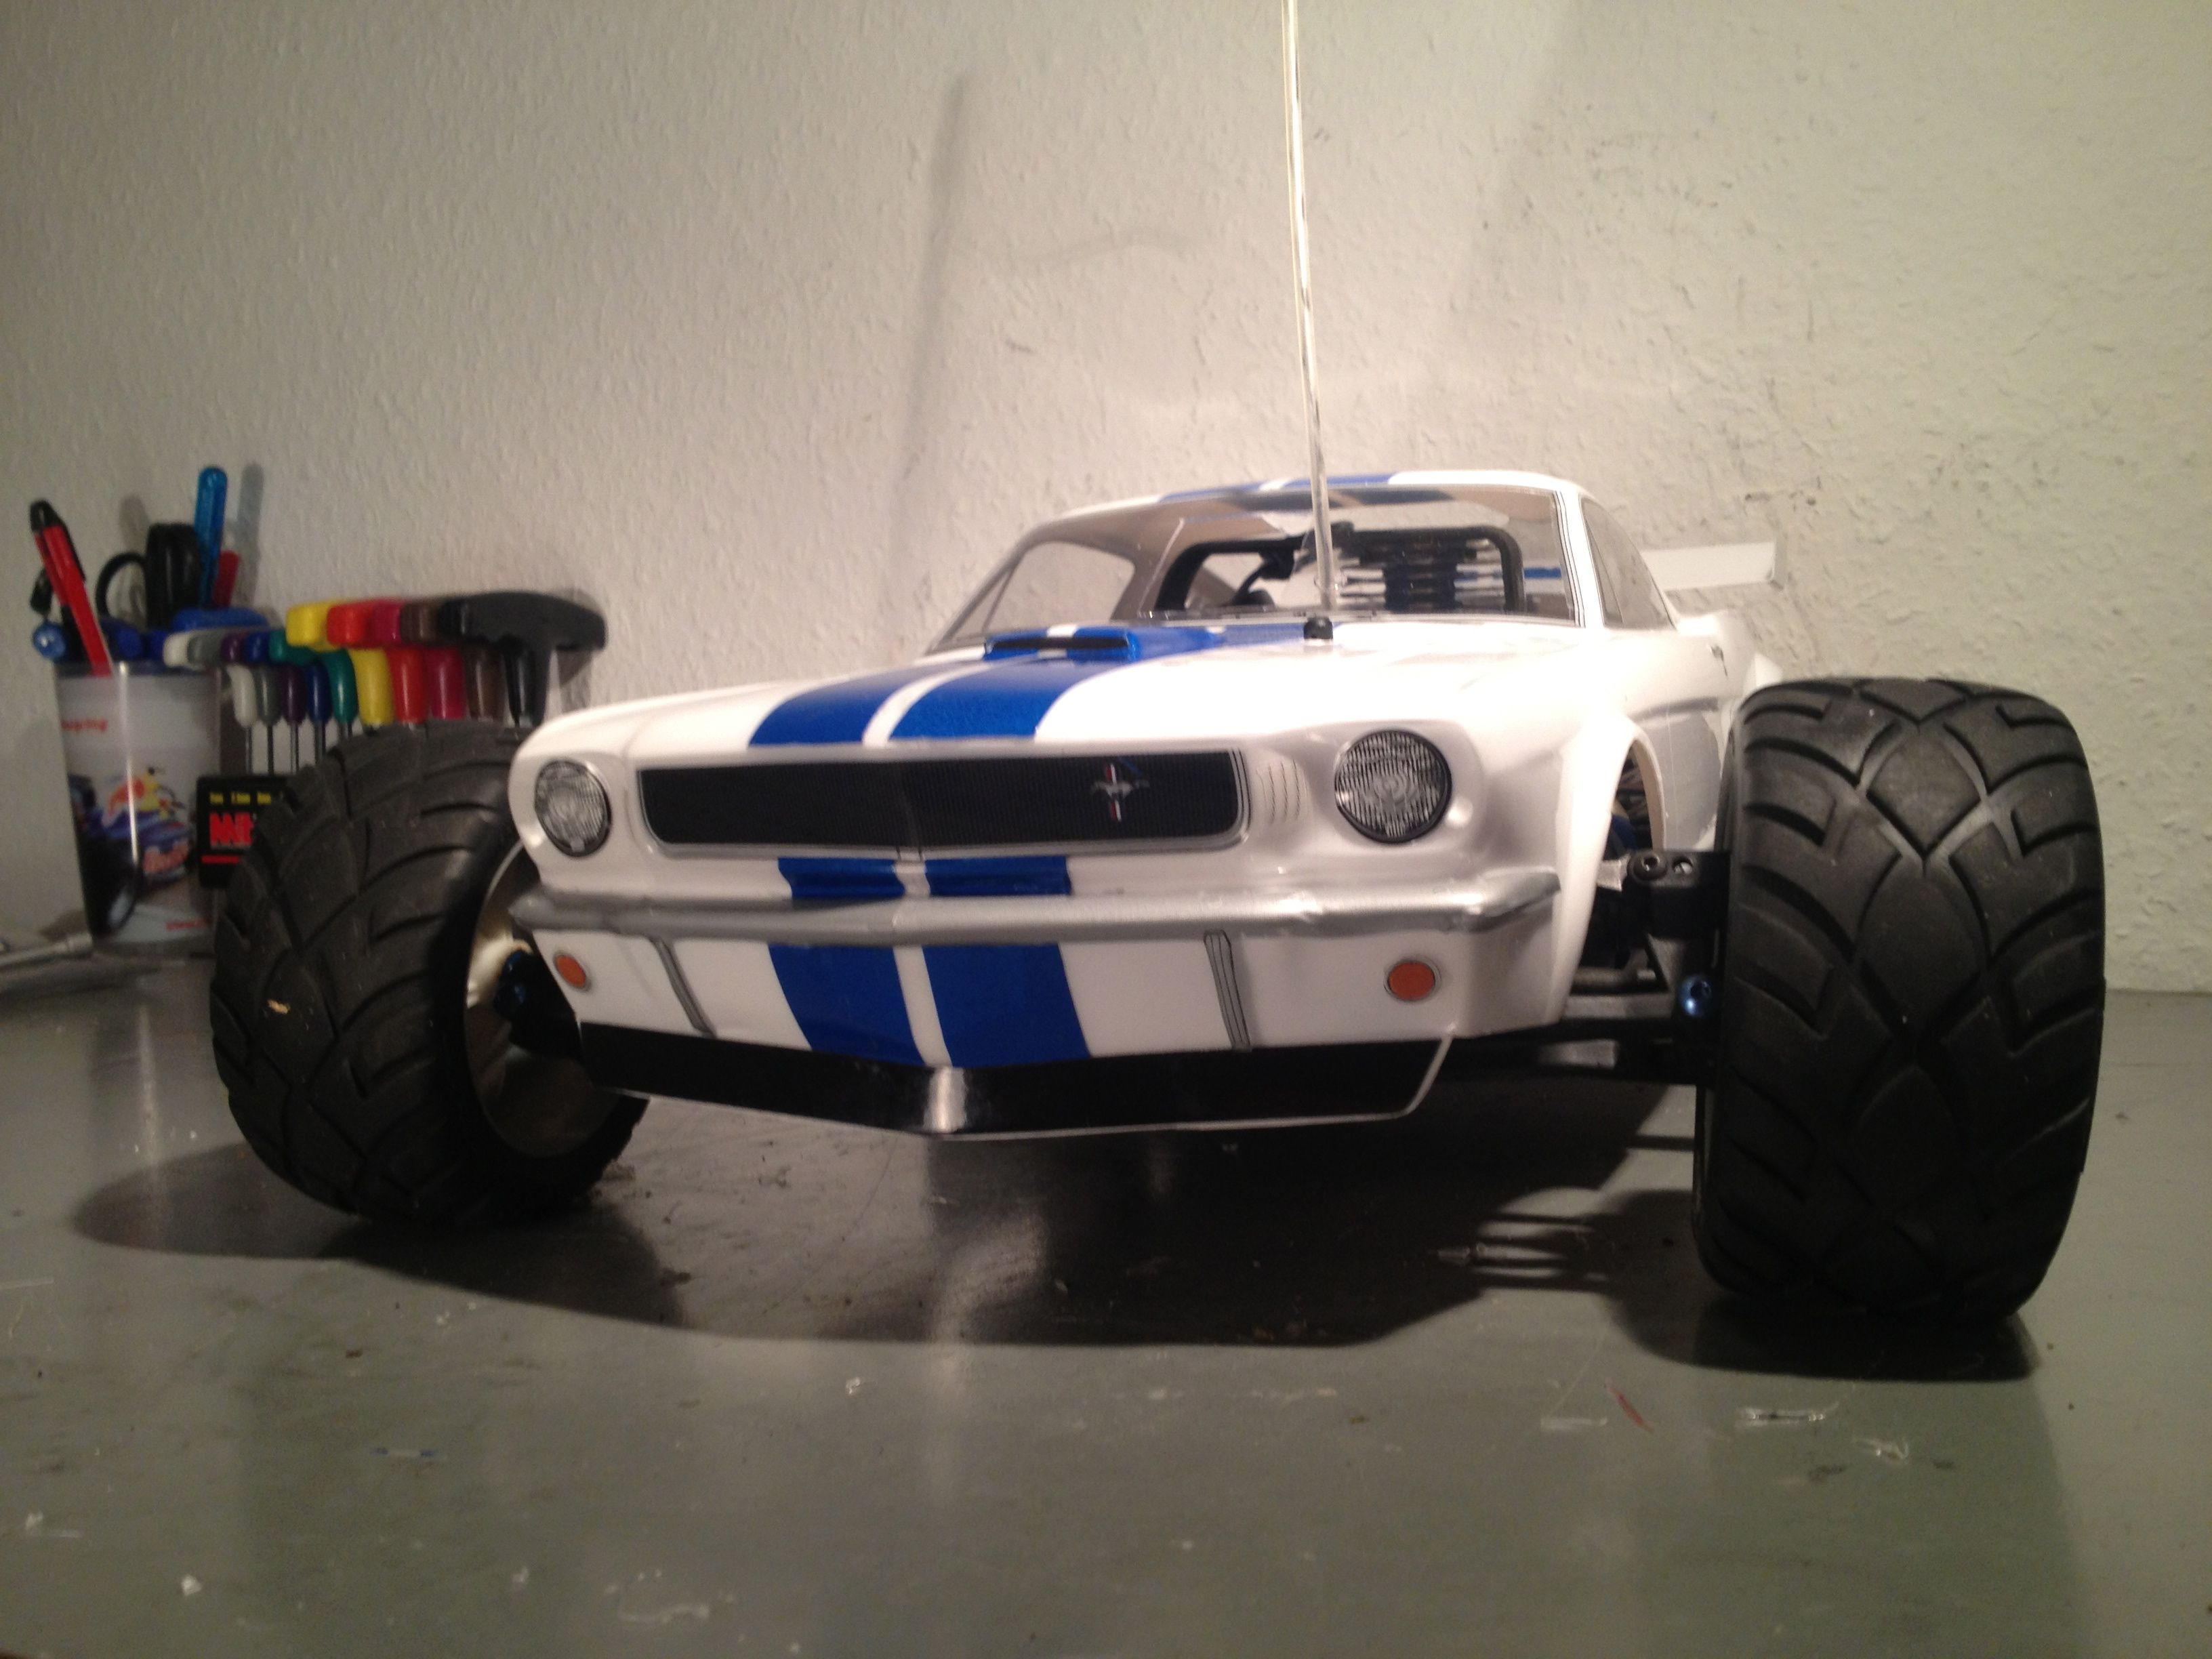 Shelby Mustang Body On Traxxas Jato Remote Control Rc